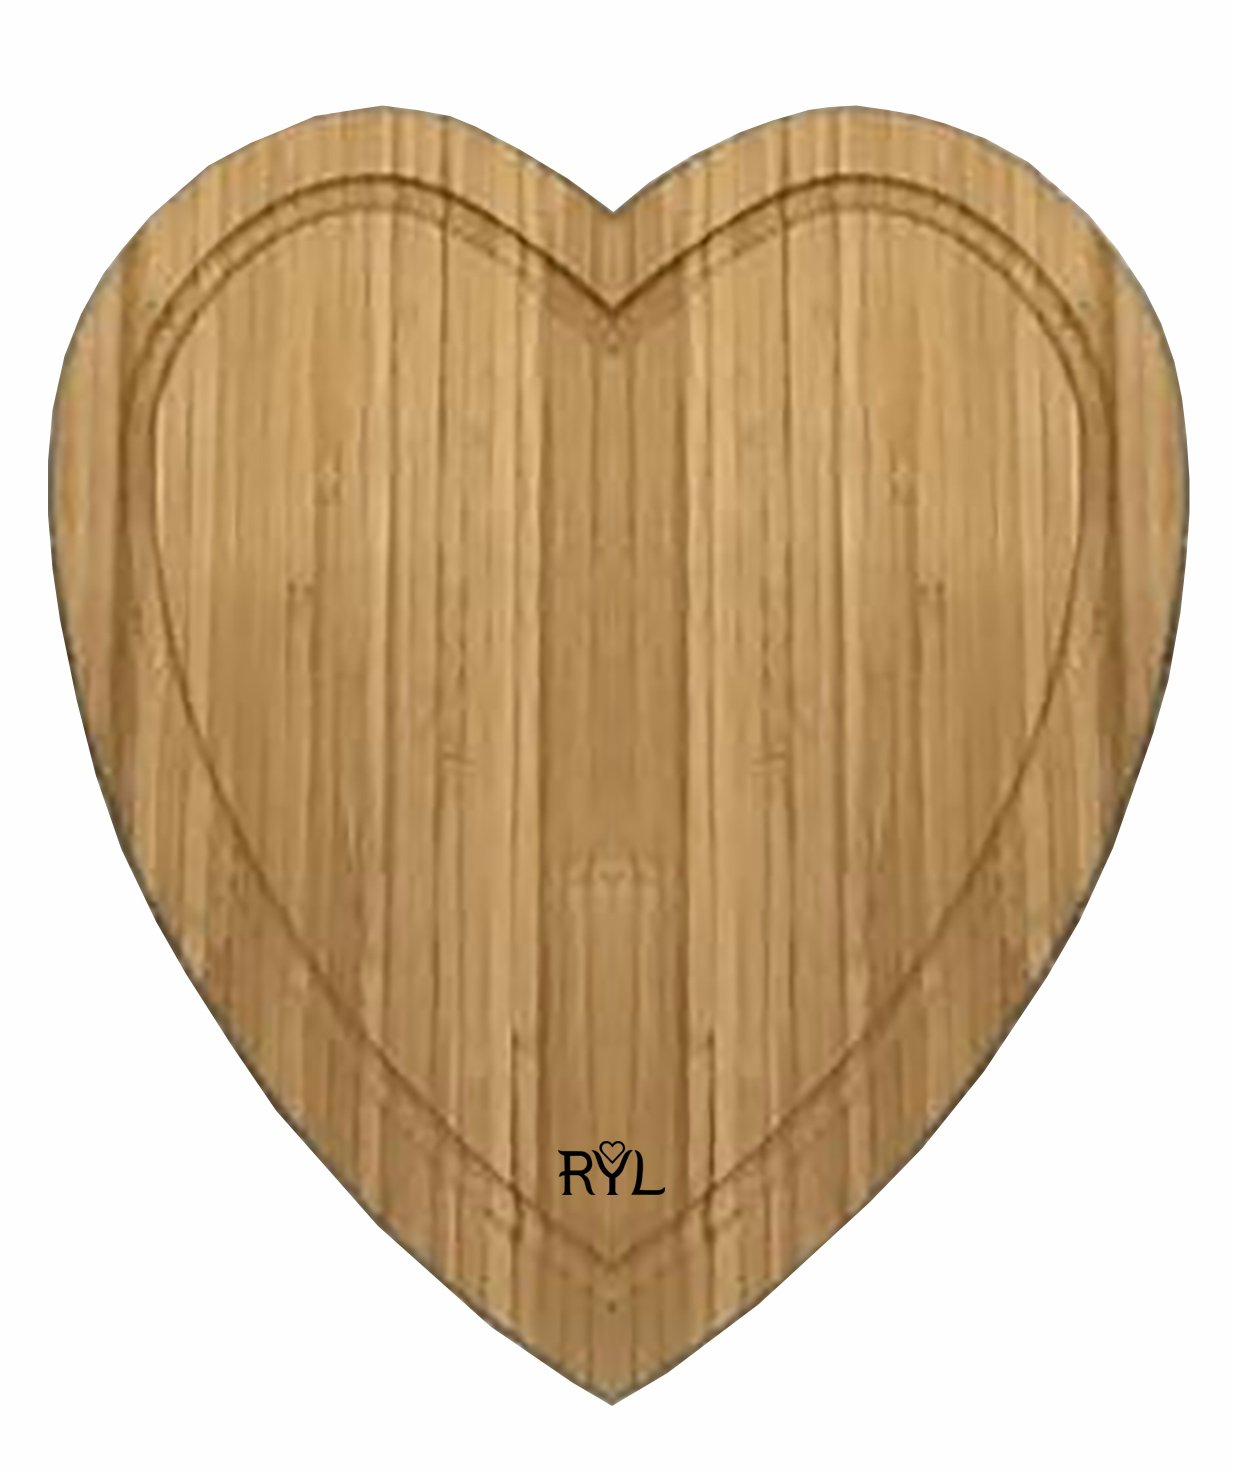 Radiate Your Love Bamboo Heart-shaped Cutting Board with Drip Groove, Durable Serving Tray for Cheese and Bread, 12 inches